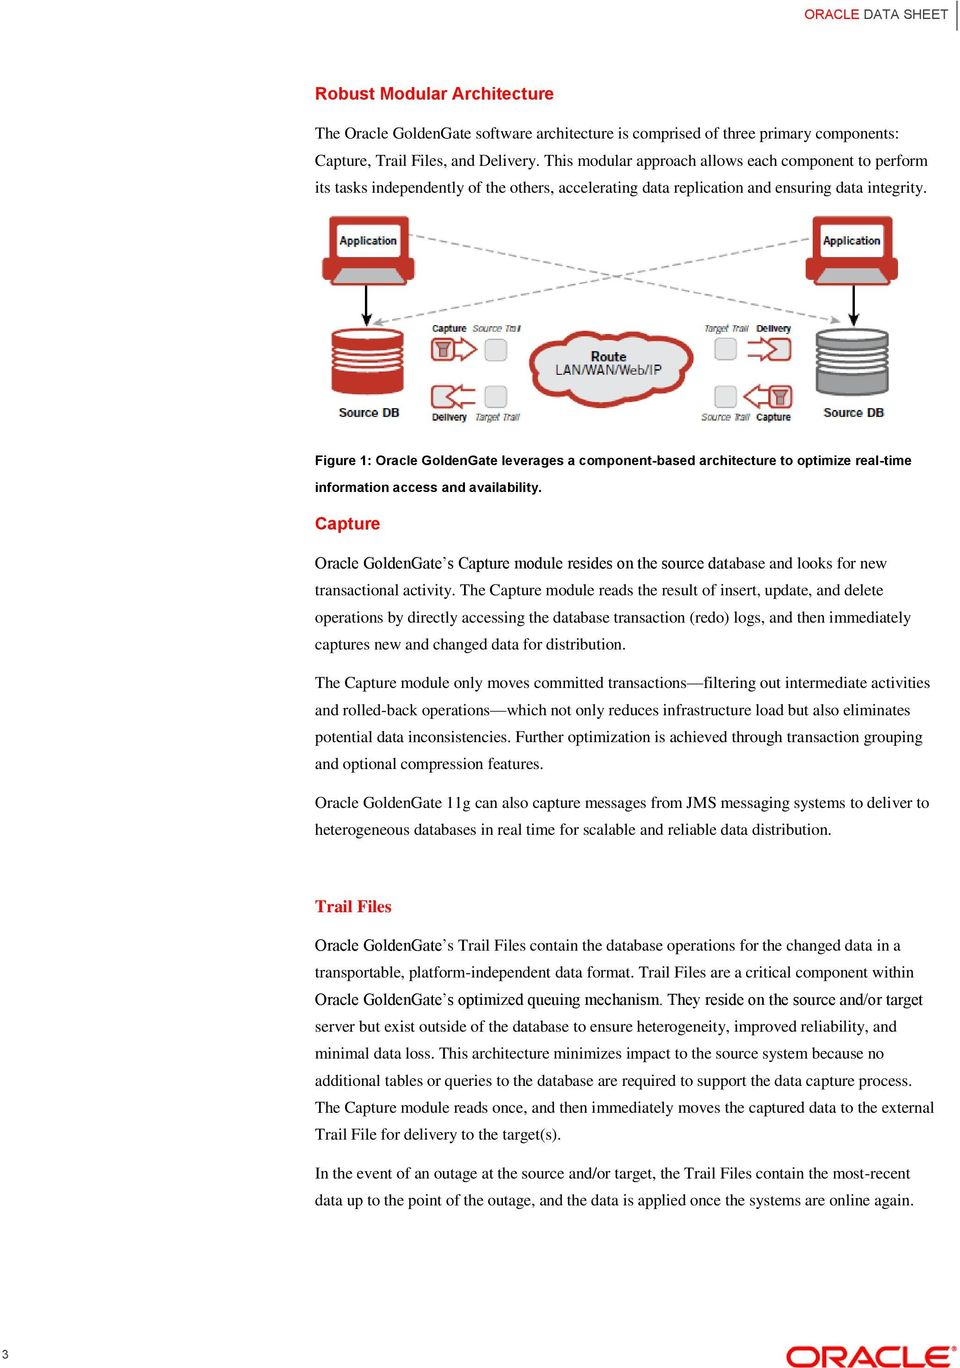 Figure 1: Oracle GldenGate leverages a cmpnent-based architecture t ptimize real-time infrmatin access and availability.